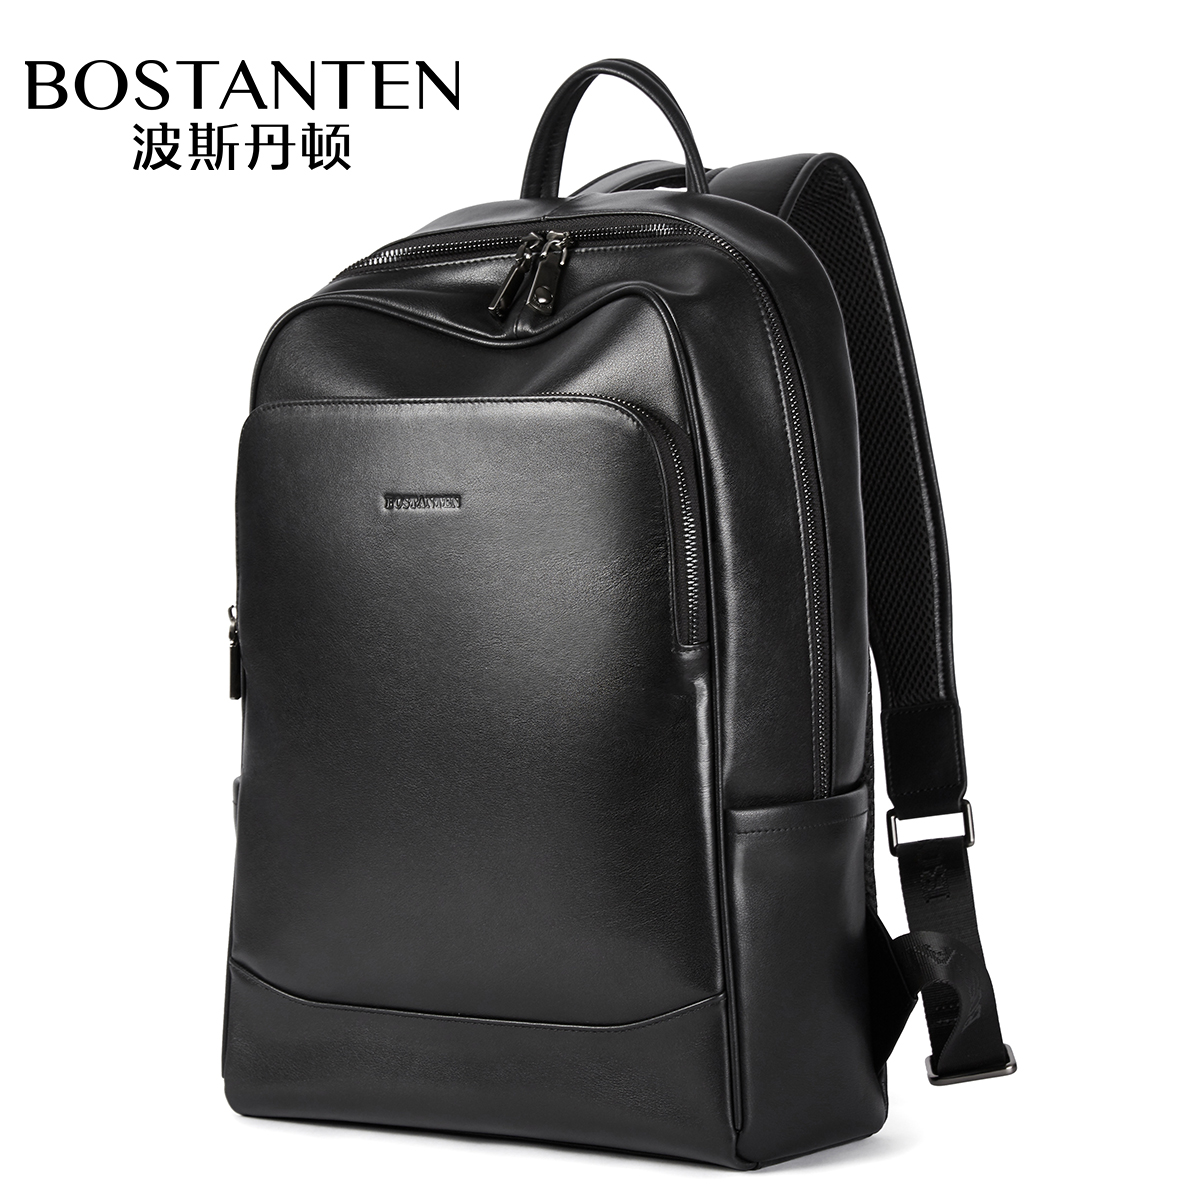 Bostanten mens Genuine Leather Backpack OL Travel Computer Fashion bag Waterproof Large-capacity Reduce Stress Cow Leather bagsBostanten mens Genuine Leather Backpack OL Travel Computer Fashion bag Waterproof Large-capacity Reduce Stress Cow Leather bags